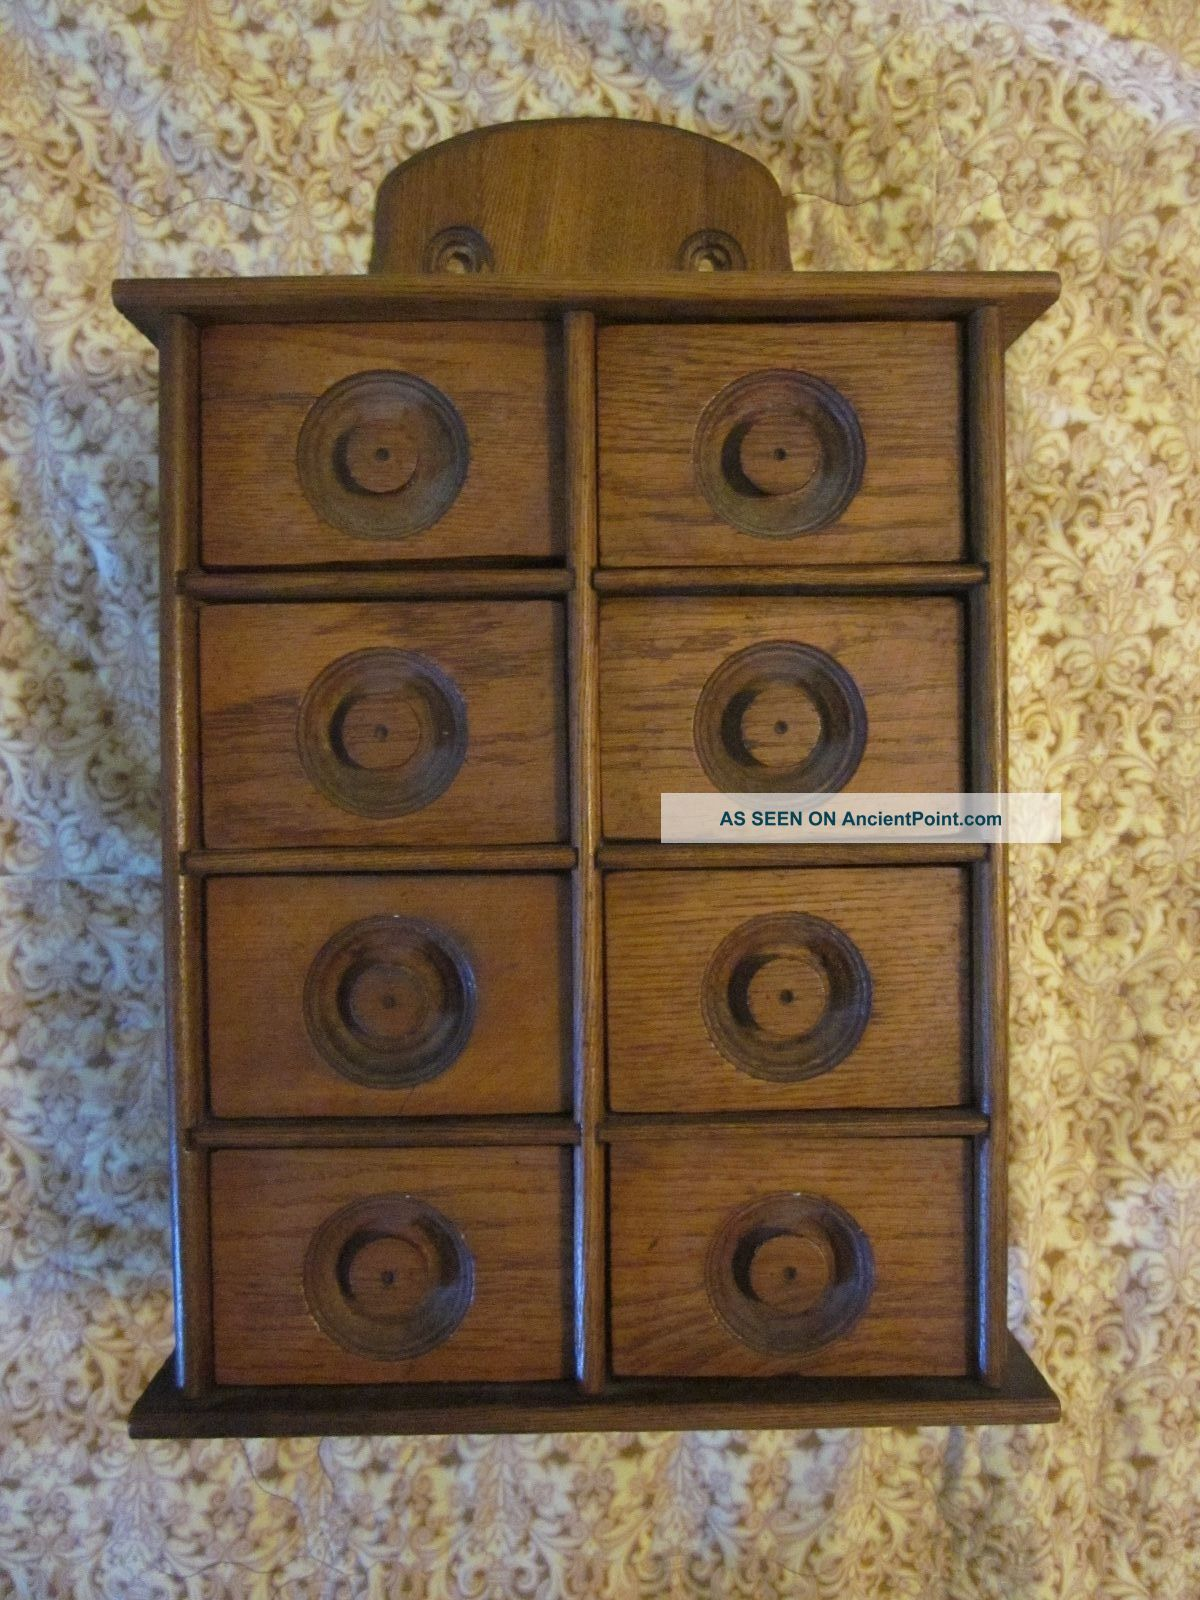 Vintage Wood Spice Apothecary Cabinet Wall Mount 8 Drawers Primitives photo